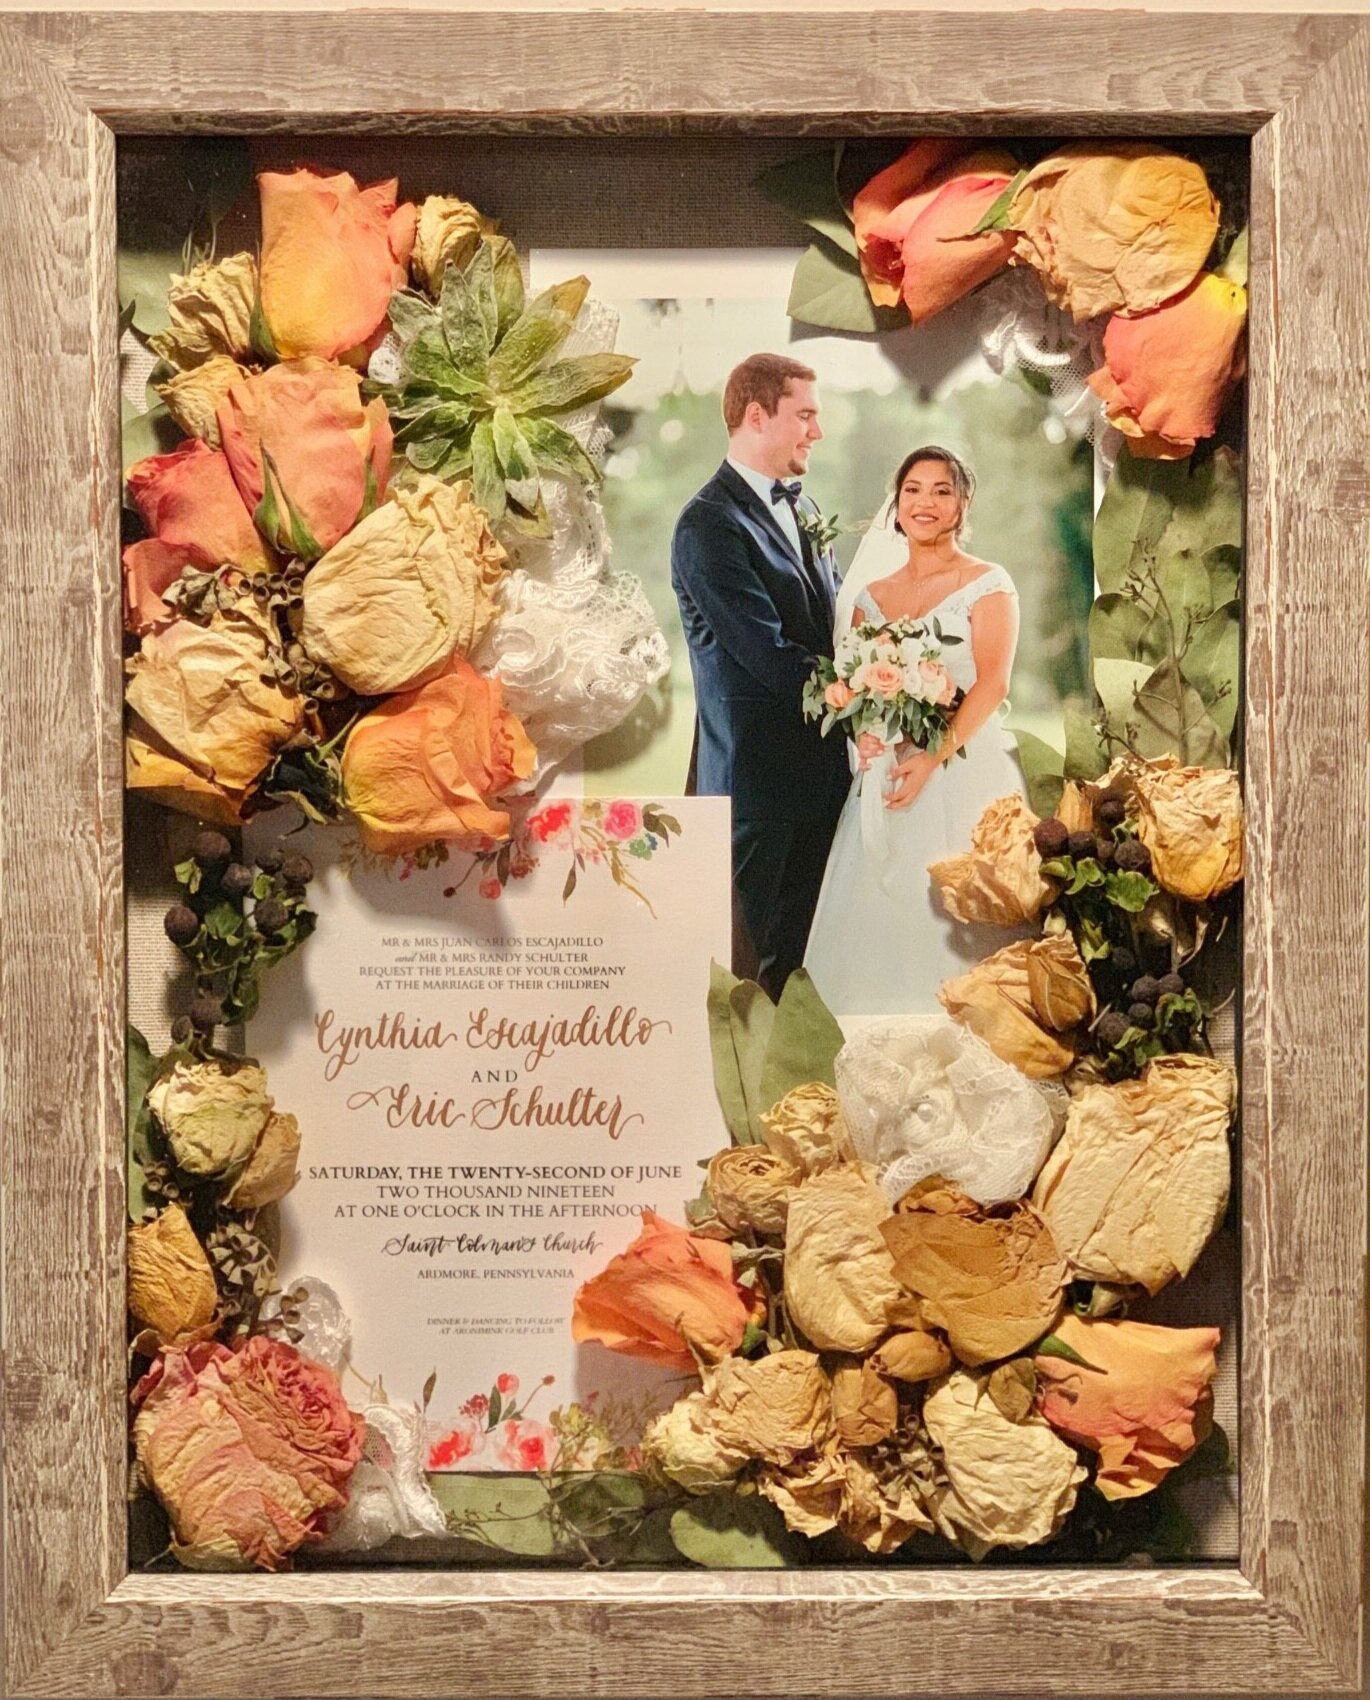 "Preserved (not pressed) bouquet from wedding in 2"" deep shadow box. 11""x 14"" reclaimed barn wood frame with 5 x 7 print of bride and groom on the wedding day. Brides can deliver bouquets, invitations, photos, swatches of dress fabric, groom's boutonnieres, cuff links, etc to be preserved in a hanging shadowbox. See  Contact Page  to inquire about preserving flowers from weddings, proms, recitals, engagements, funerals, etc."